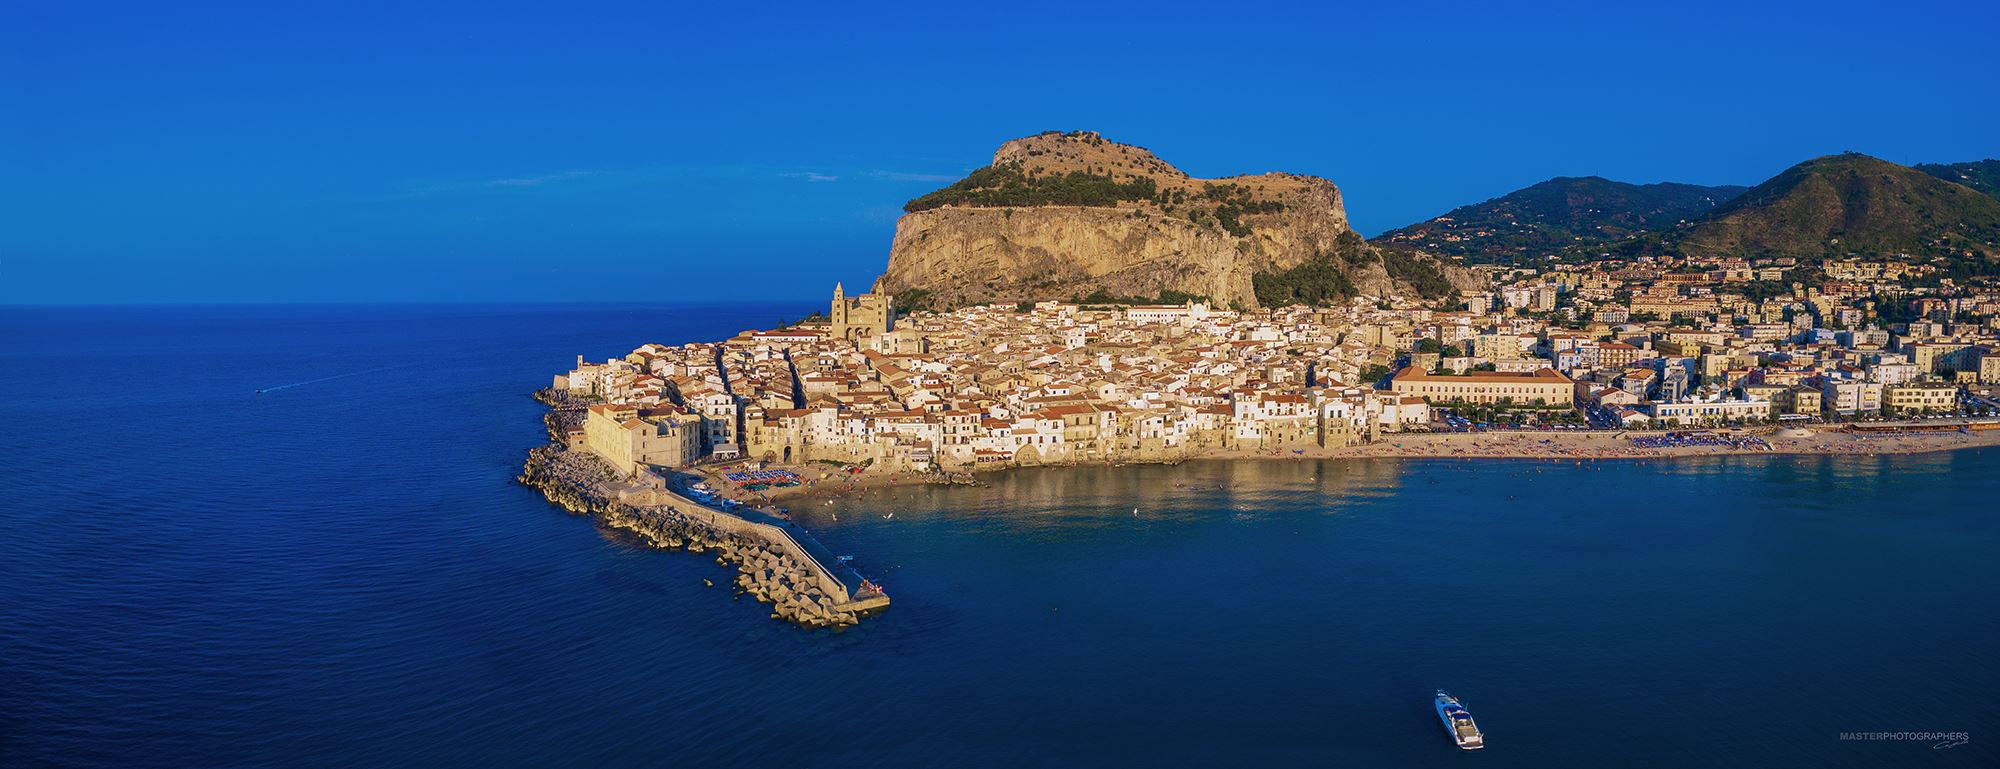 Cefalù is an amazing town on the water